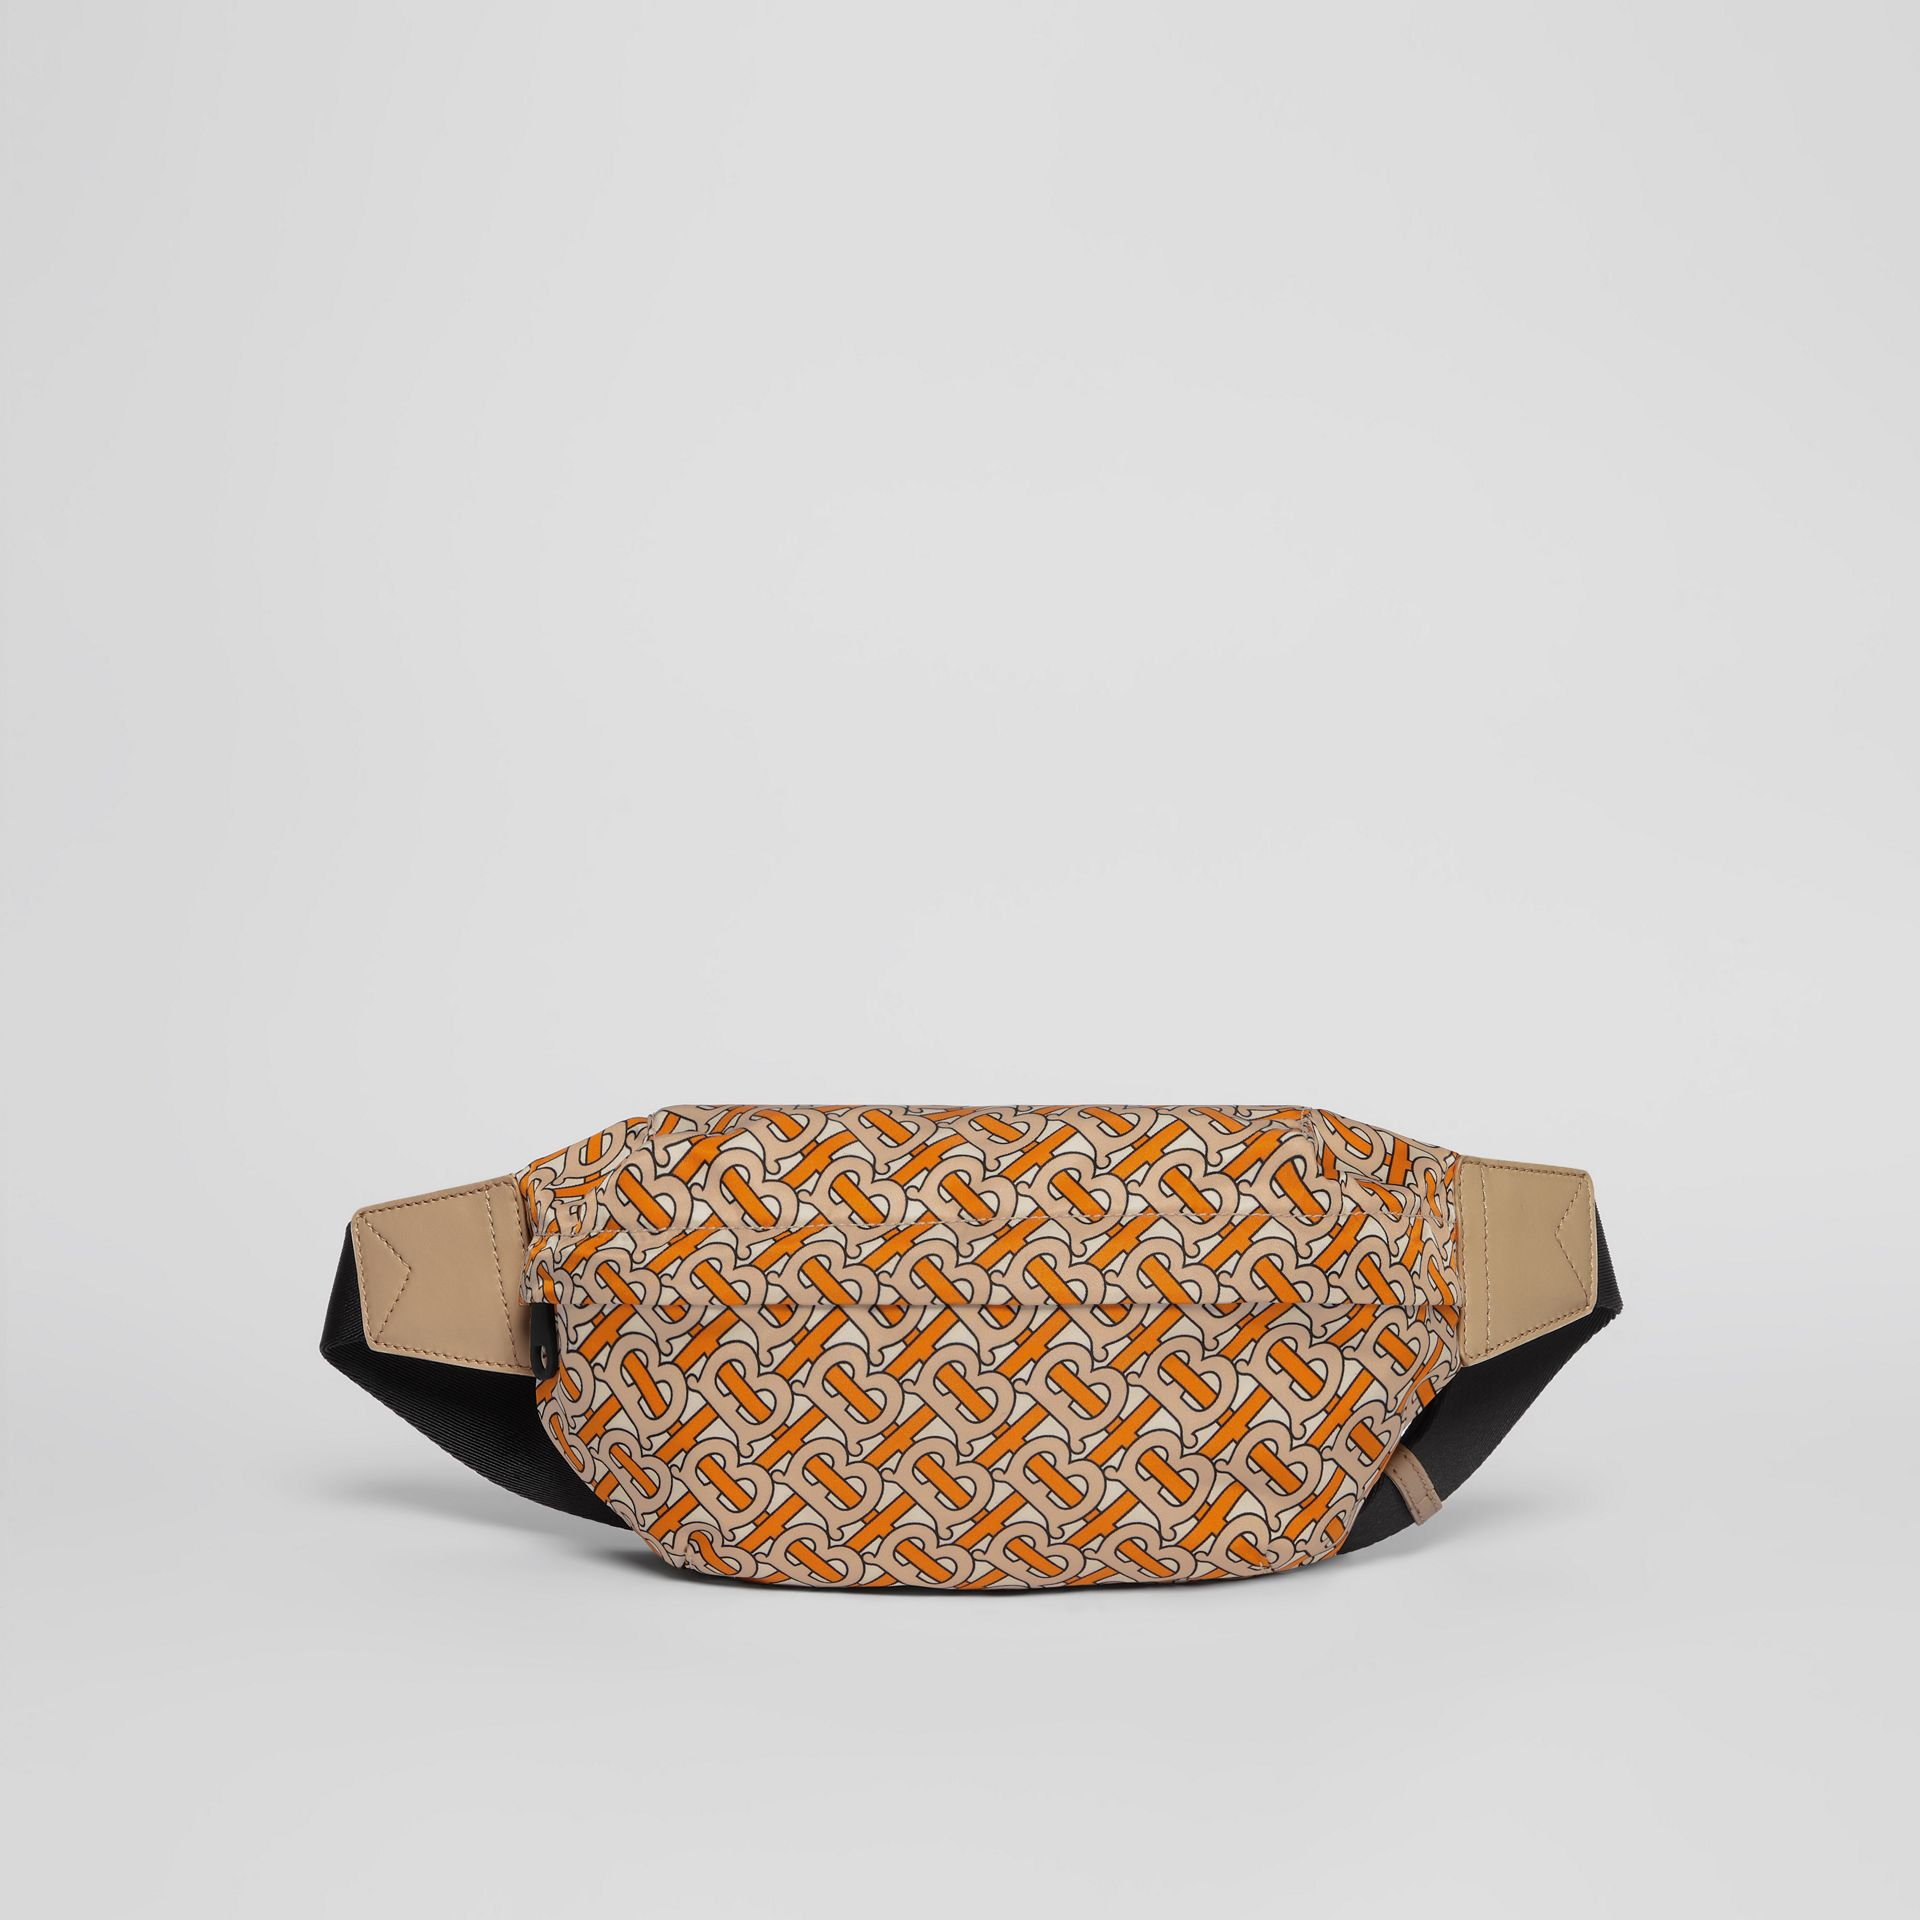 Sac banane moyen Monogram (Orange Vif) - Femme | Burberry - photo de la galerie 0